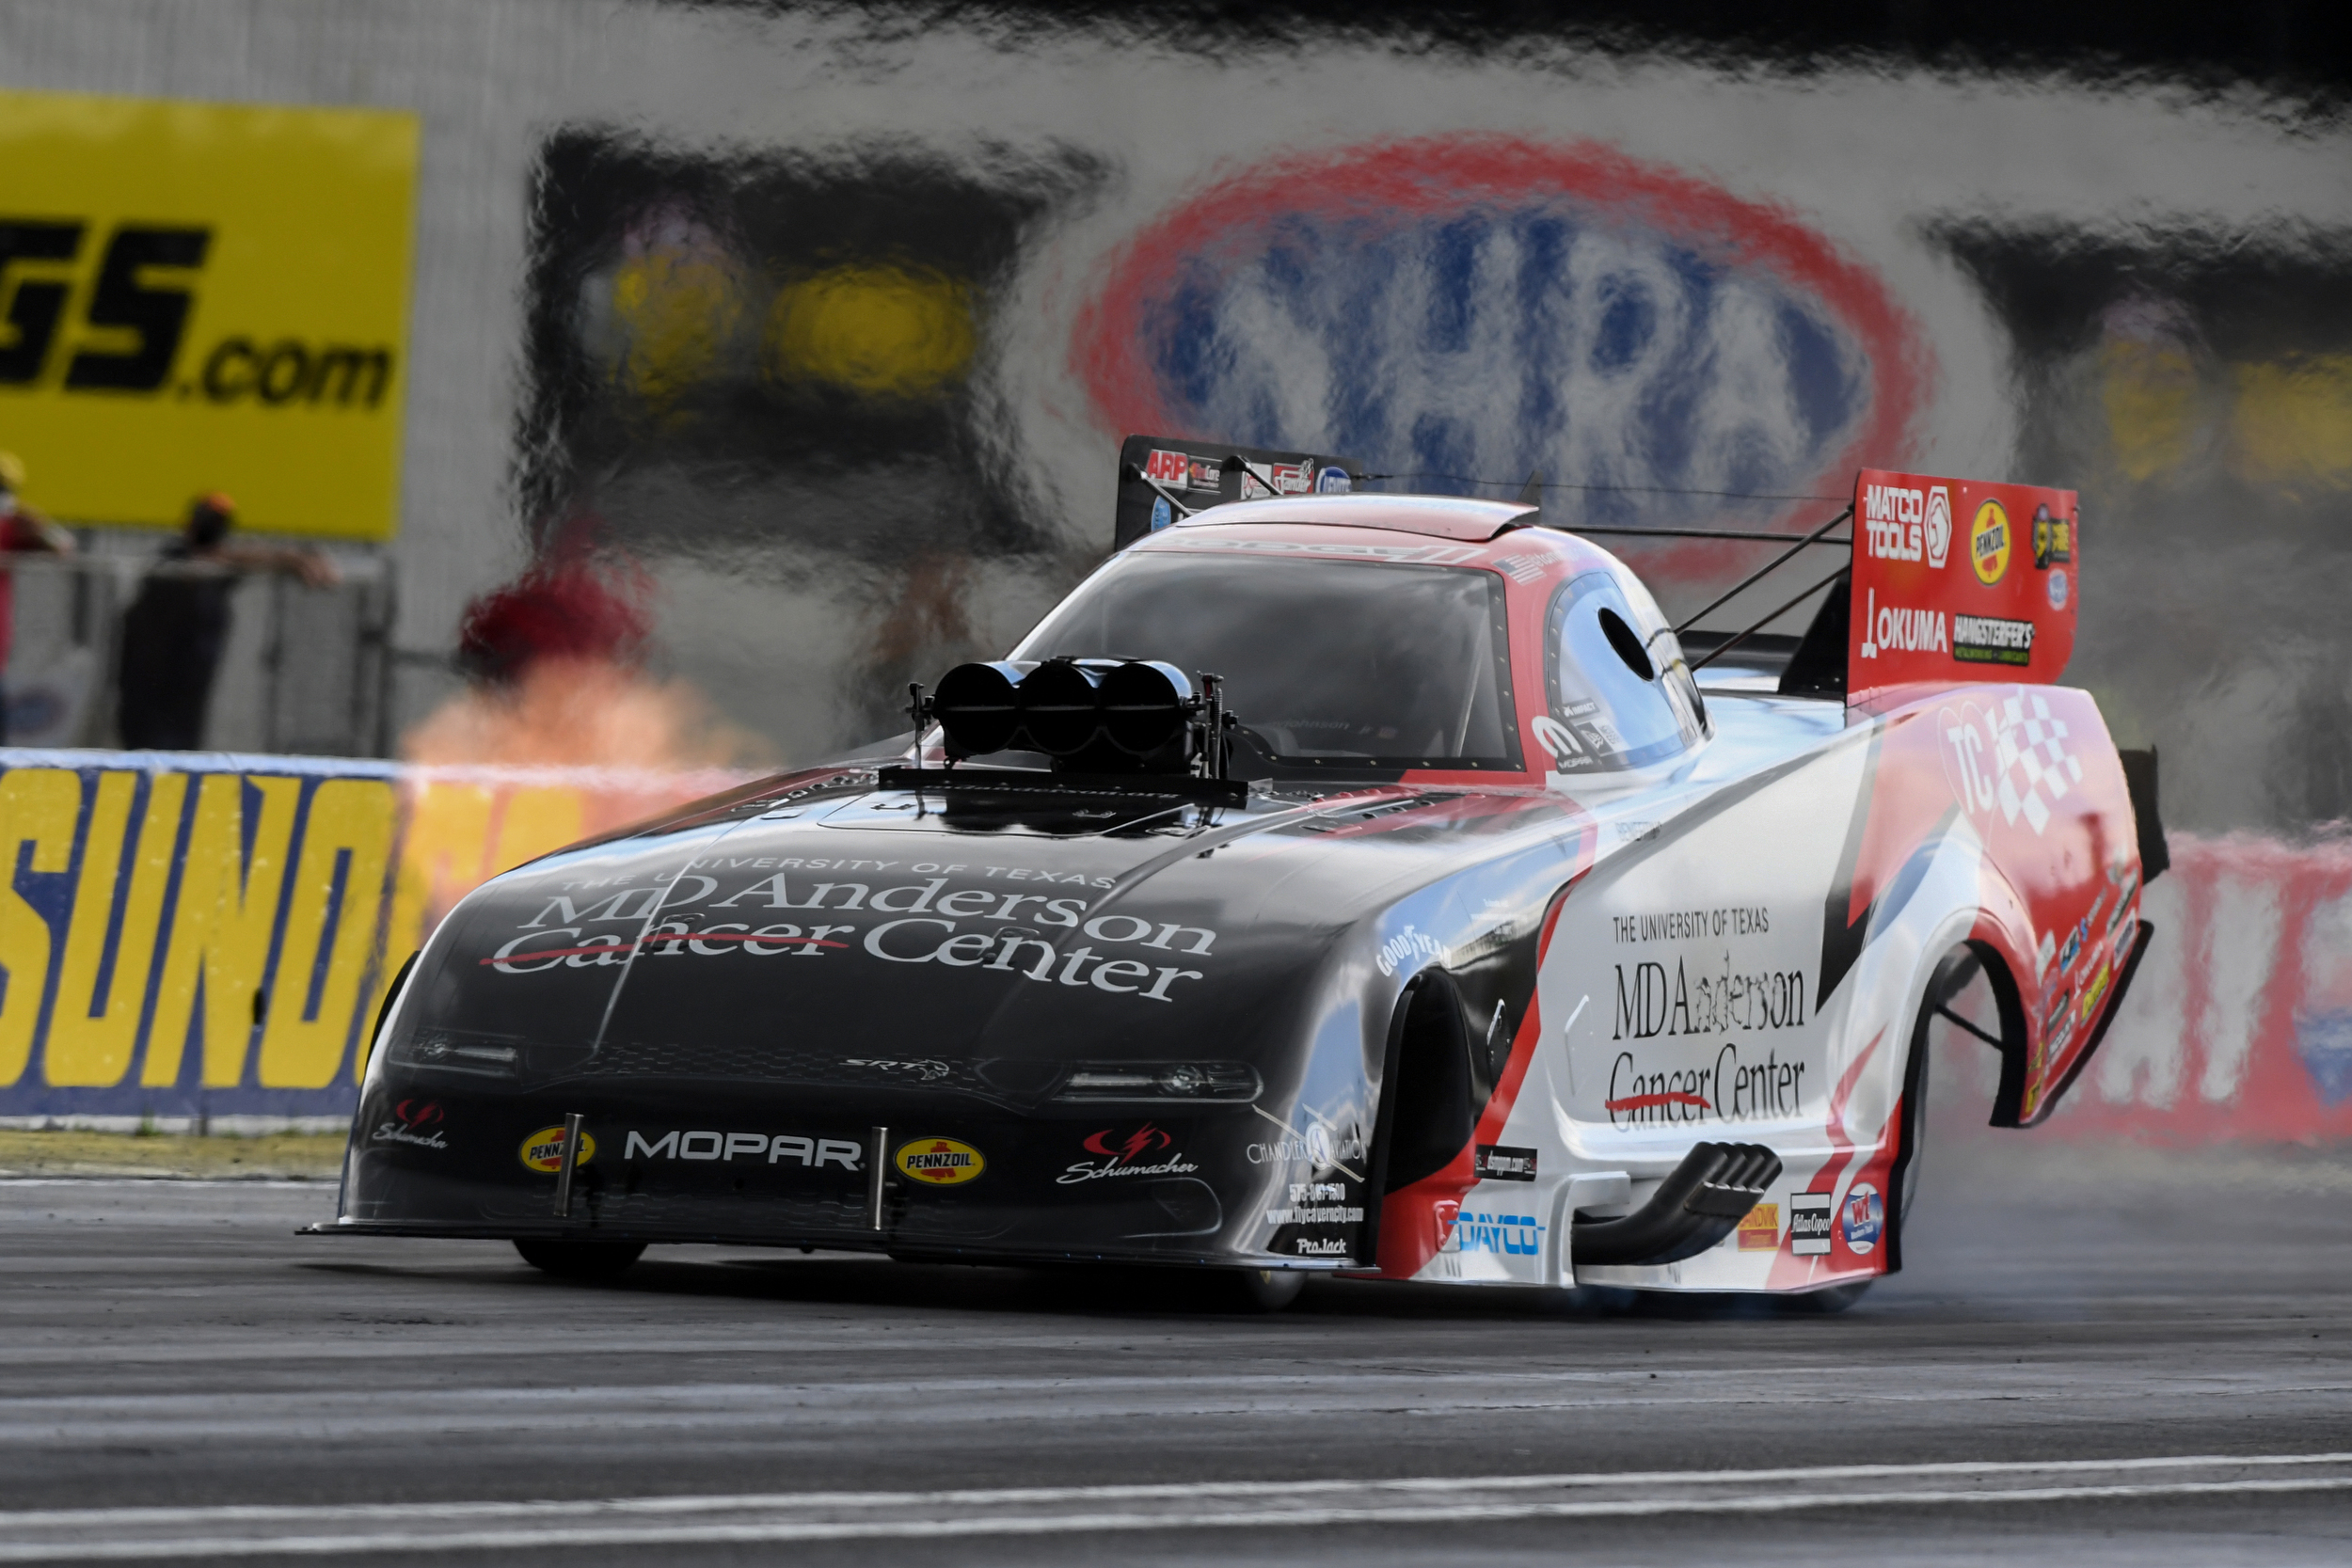 MD Anderson Cancer Center Funny Car pilot Tommy Johnson Jr. is the No. 1 qualifier at the E3 Spark Plugs NHRA Nationals